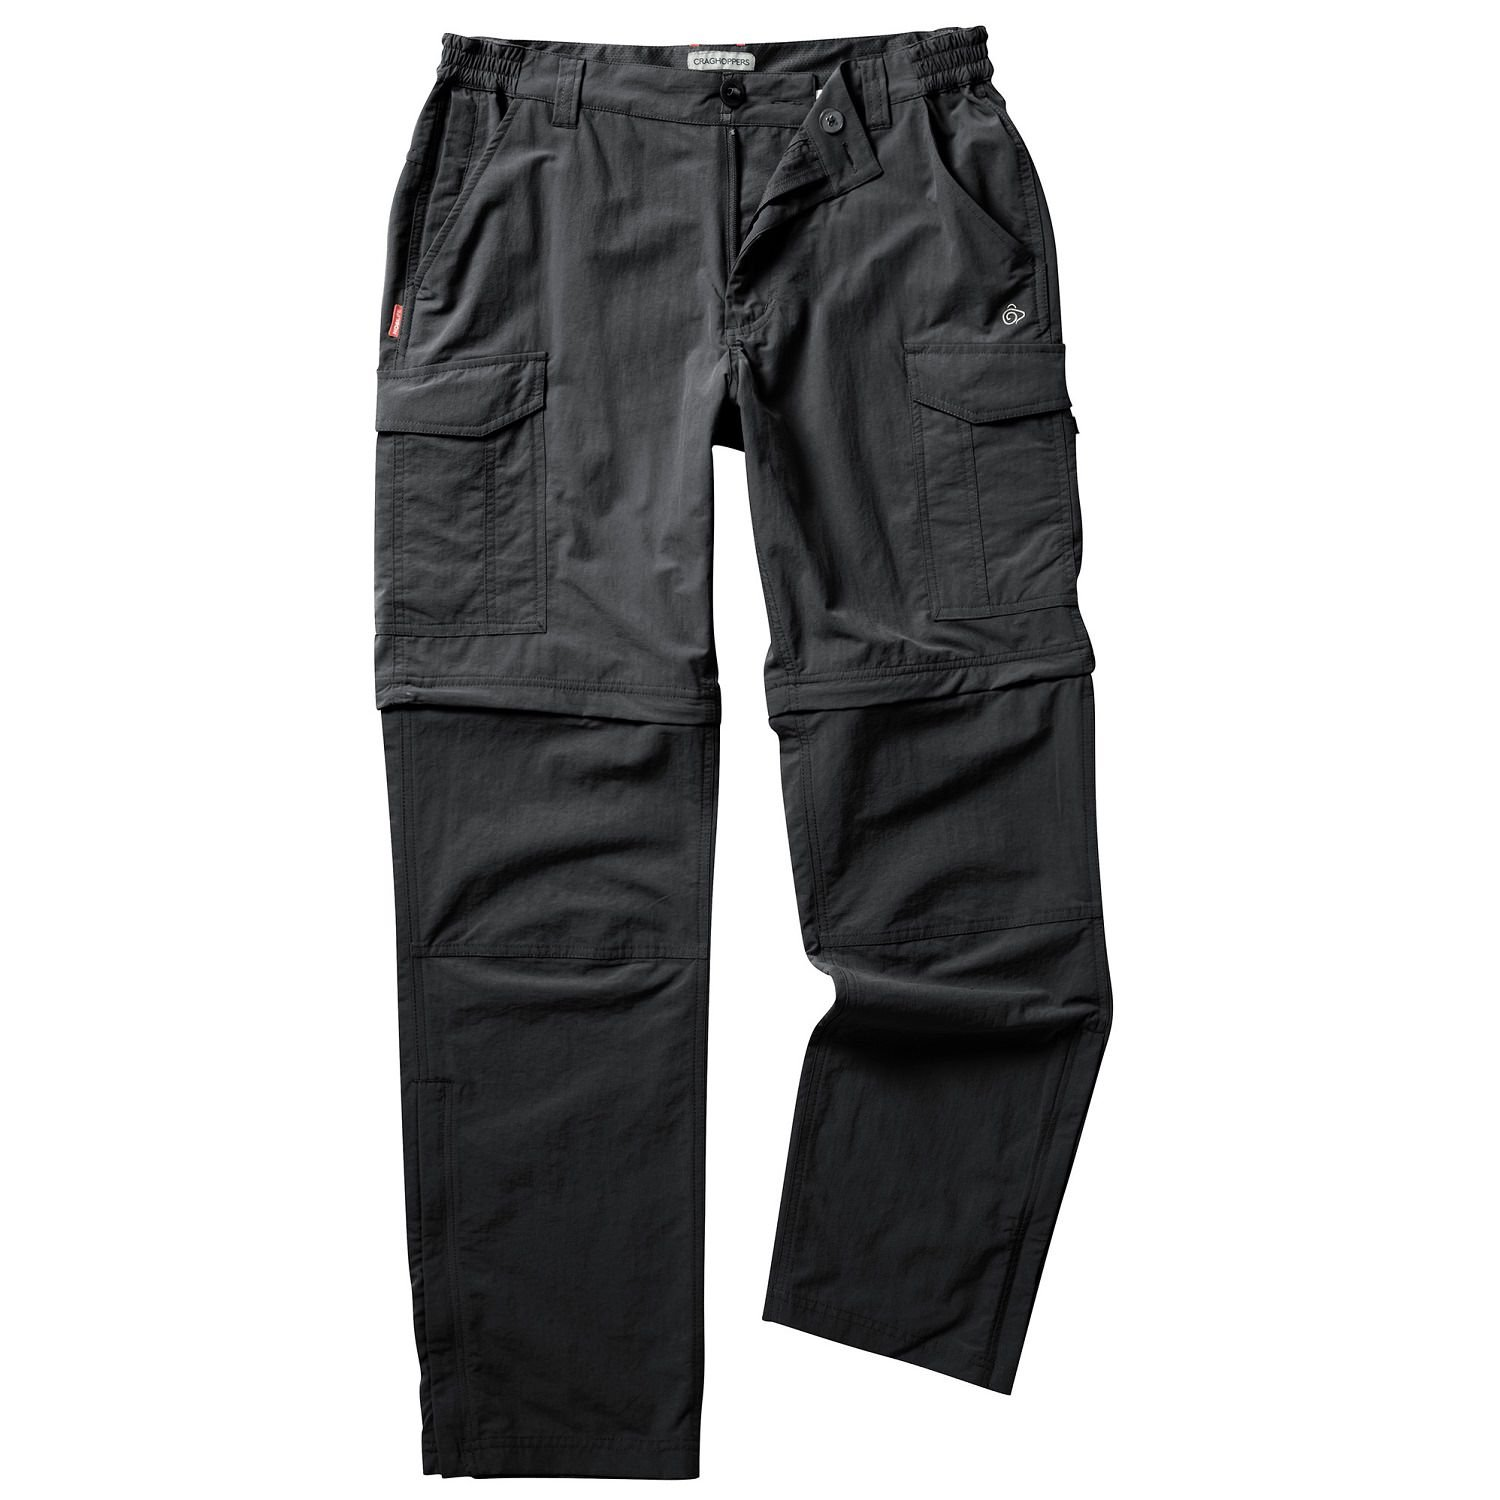 Craghoppers Nosilife Mens Convertible Trousers - Black or Pebble/30S - 40L